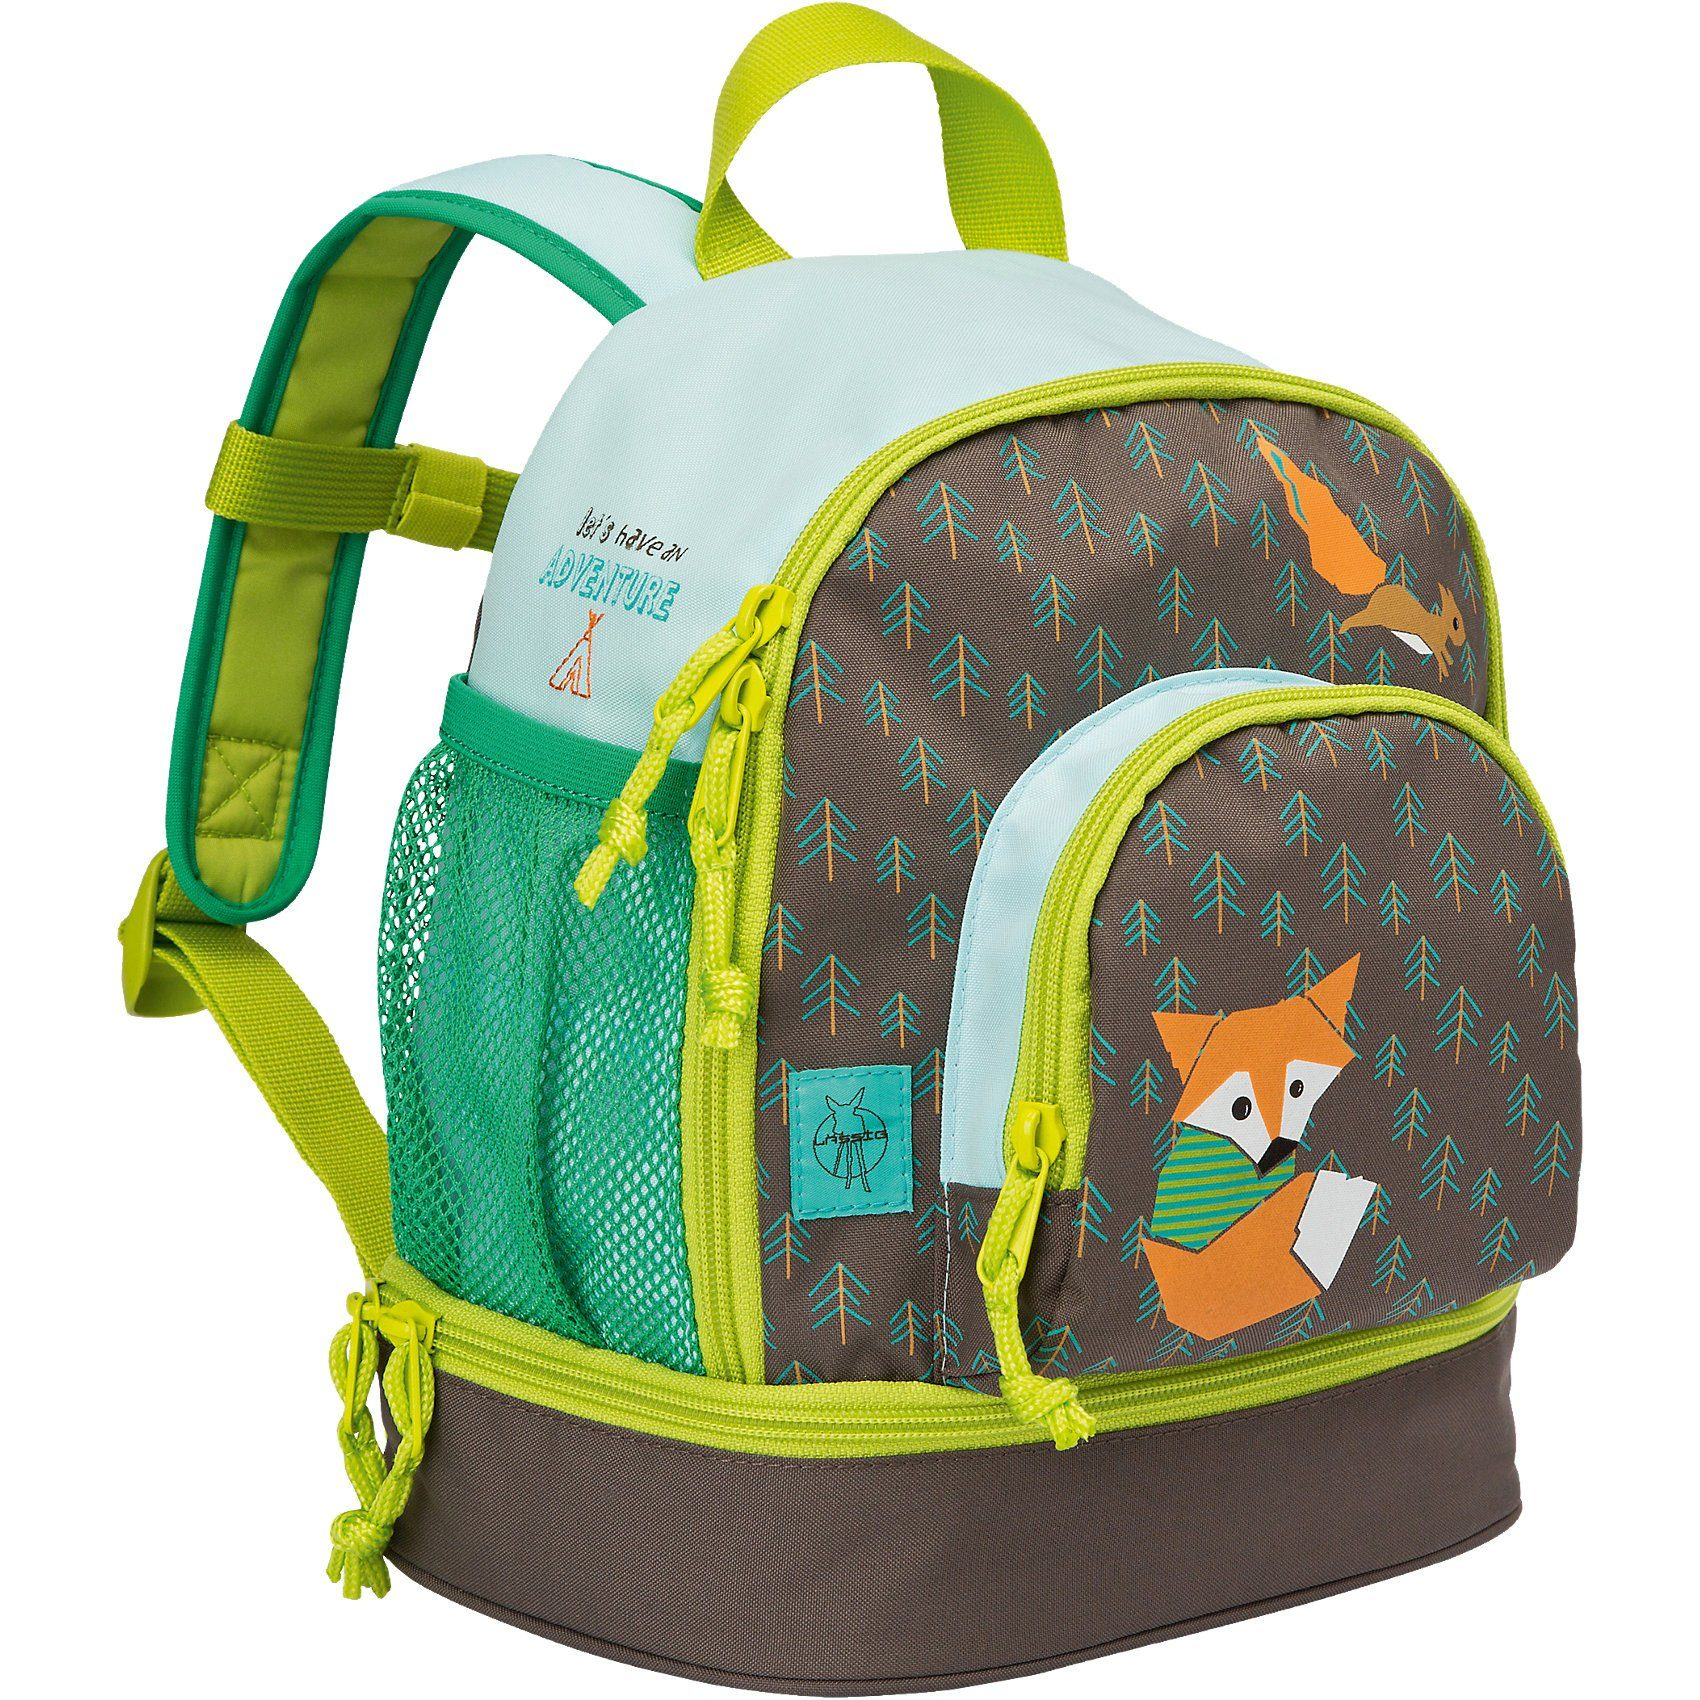 Lässig Kindergarten Rucksack 4kids, Mini Backpack, Little Tree, Fox